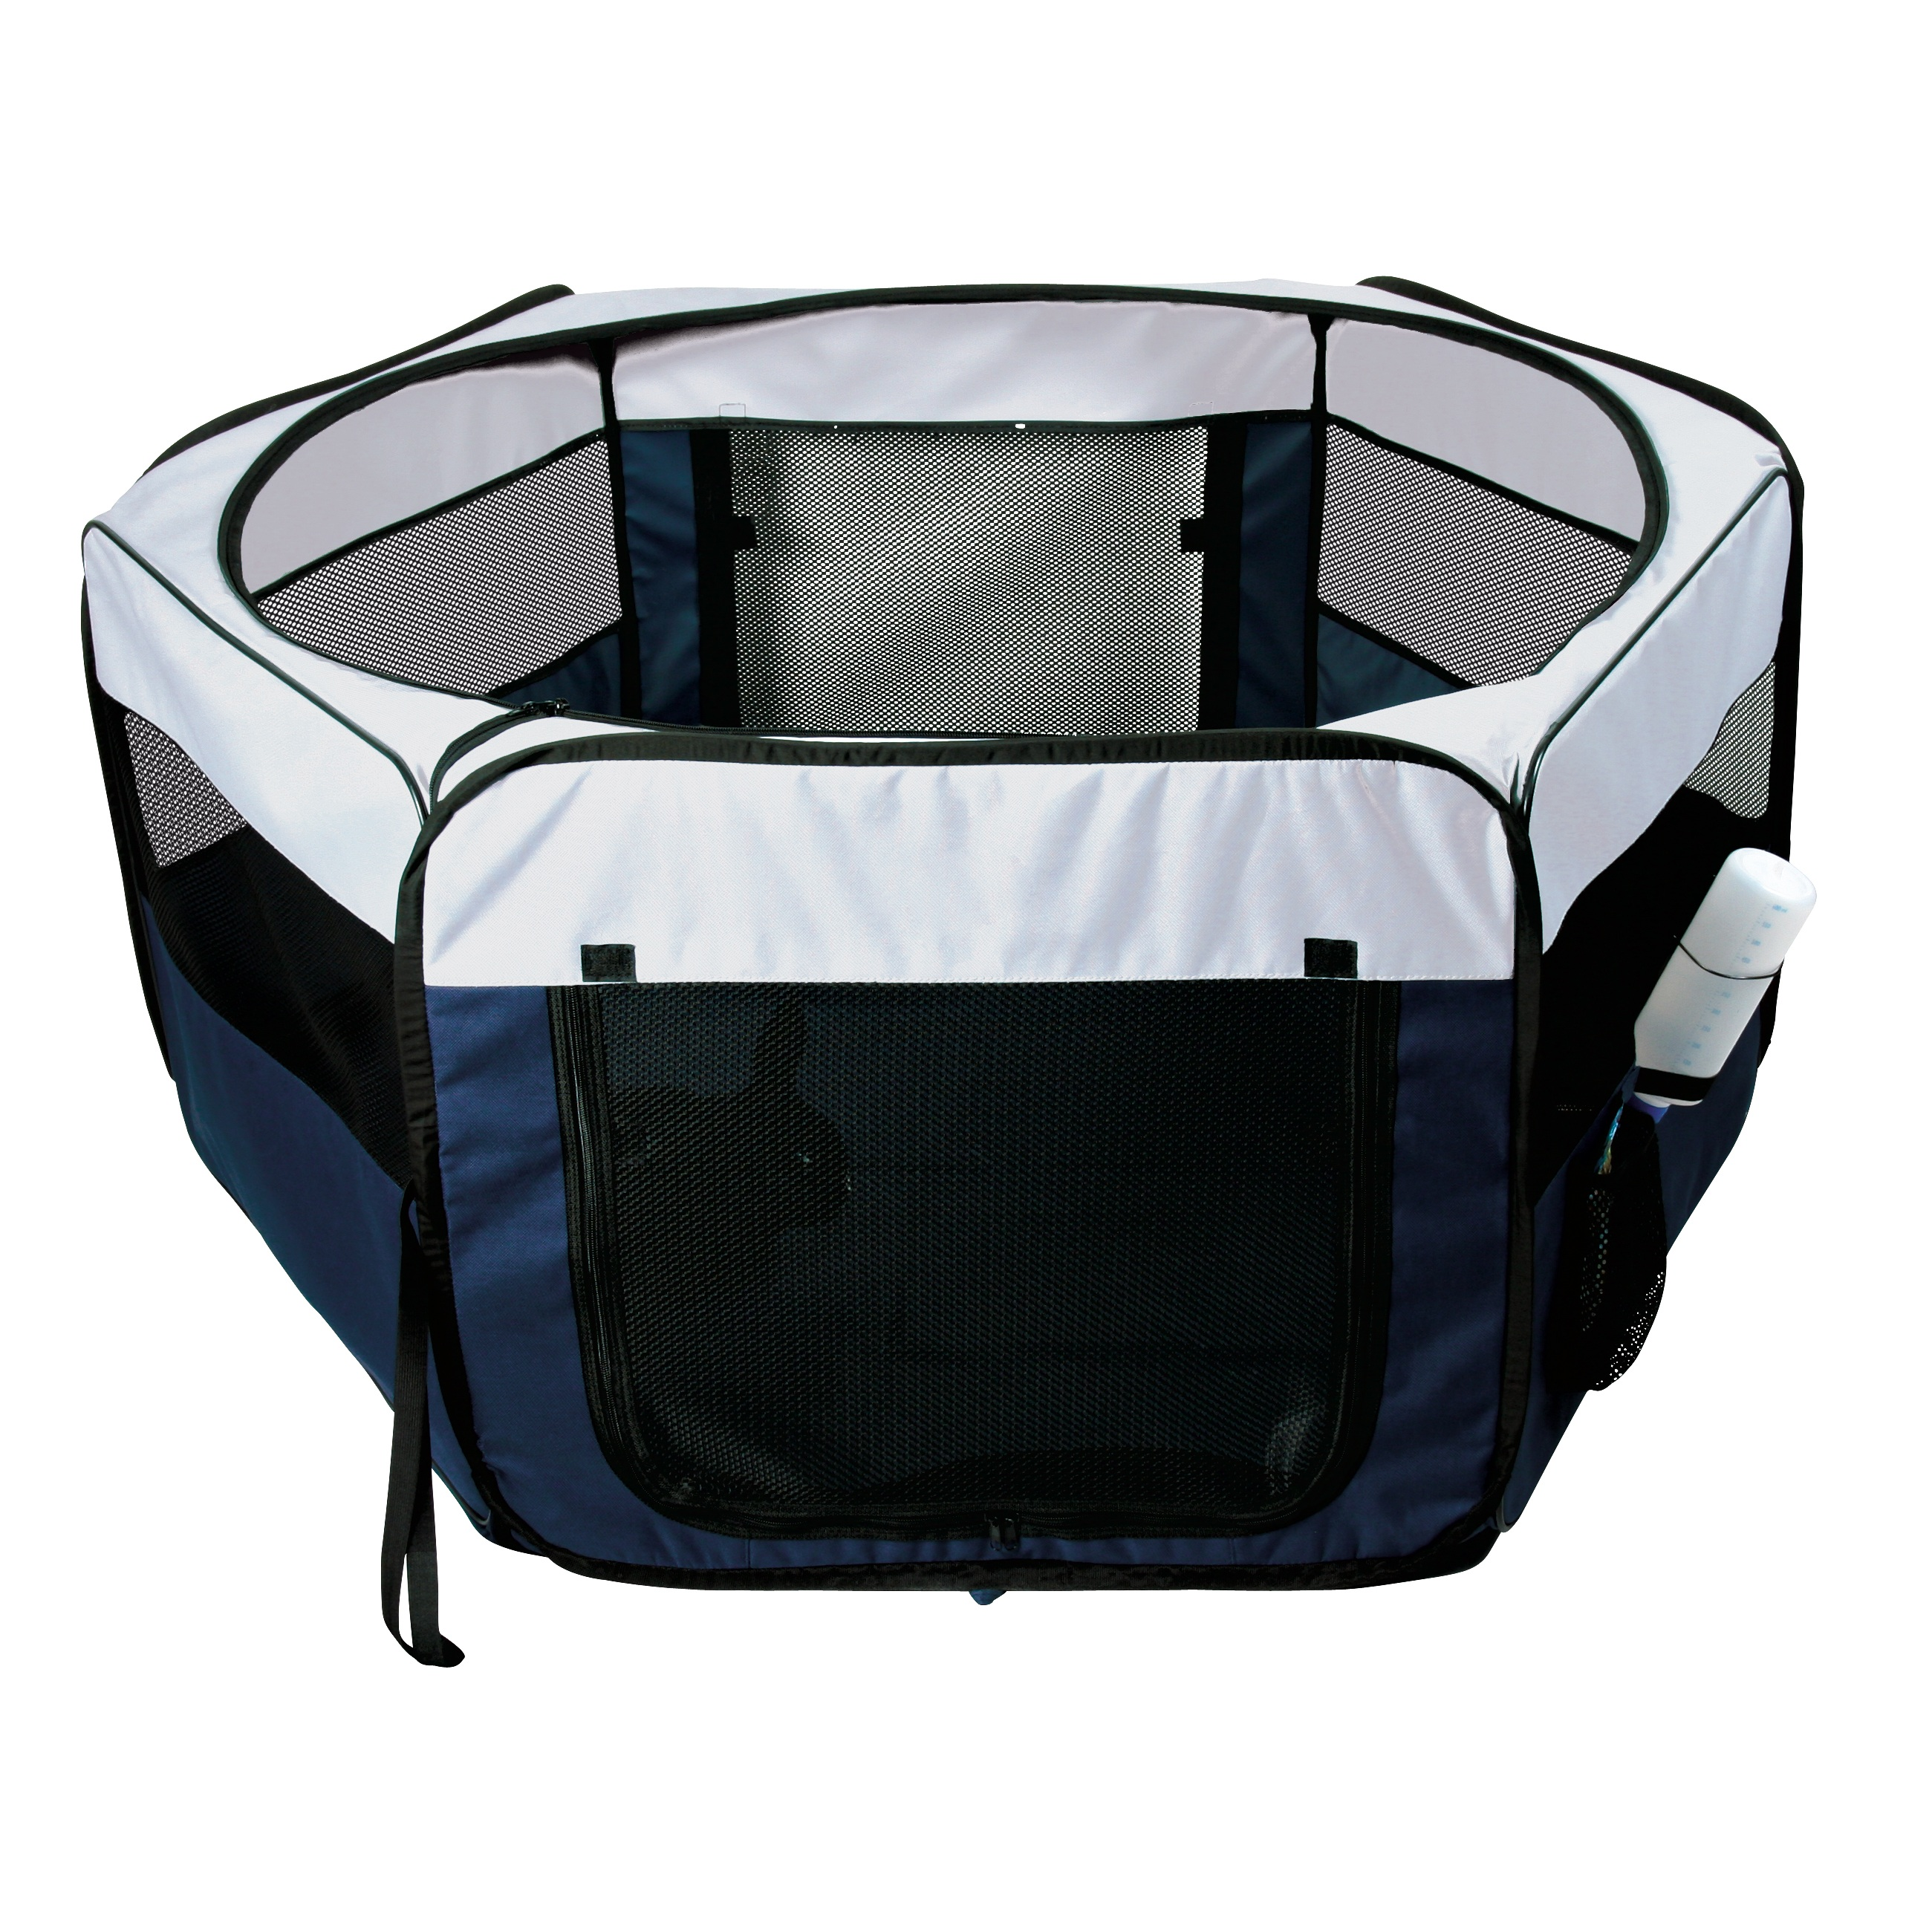 Trixie Pet Soft Sided Mobile Play Pen (M)